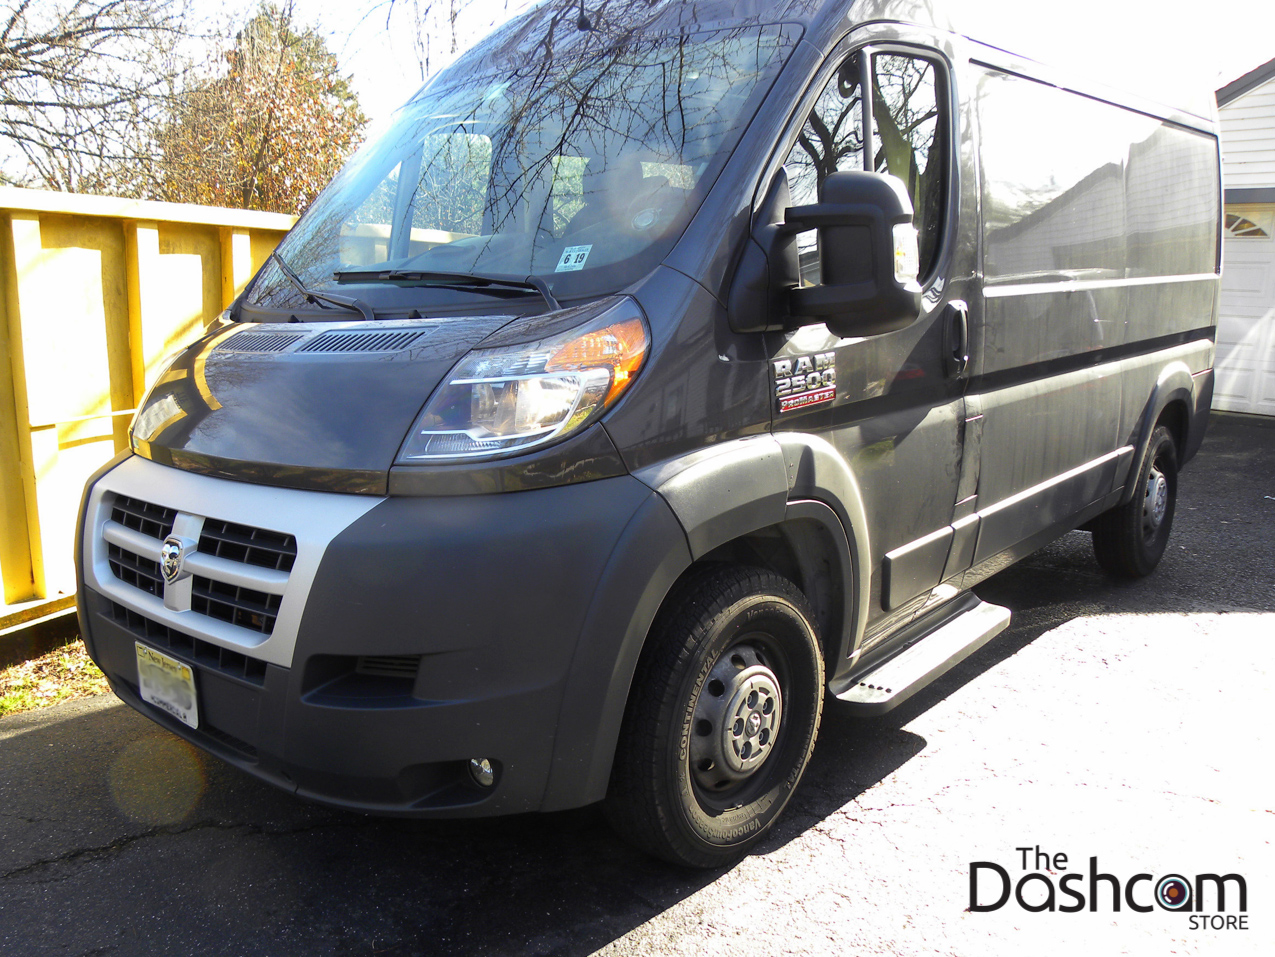 2015 Dodge Ram Promaster Blackvue Dr650gw 2ch Dashcam Installation Ford Transit Connect 2nd Generation Fuse Box Usa Version Dash Cam 2500 Locating The Interior